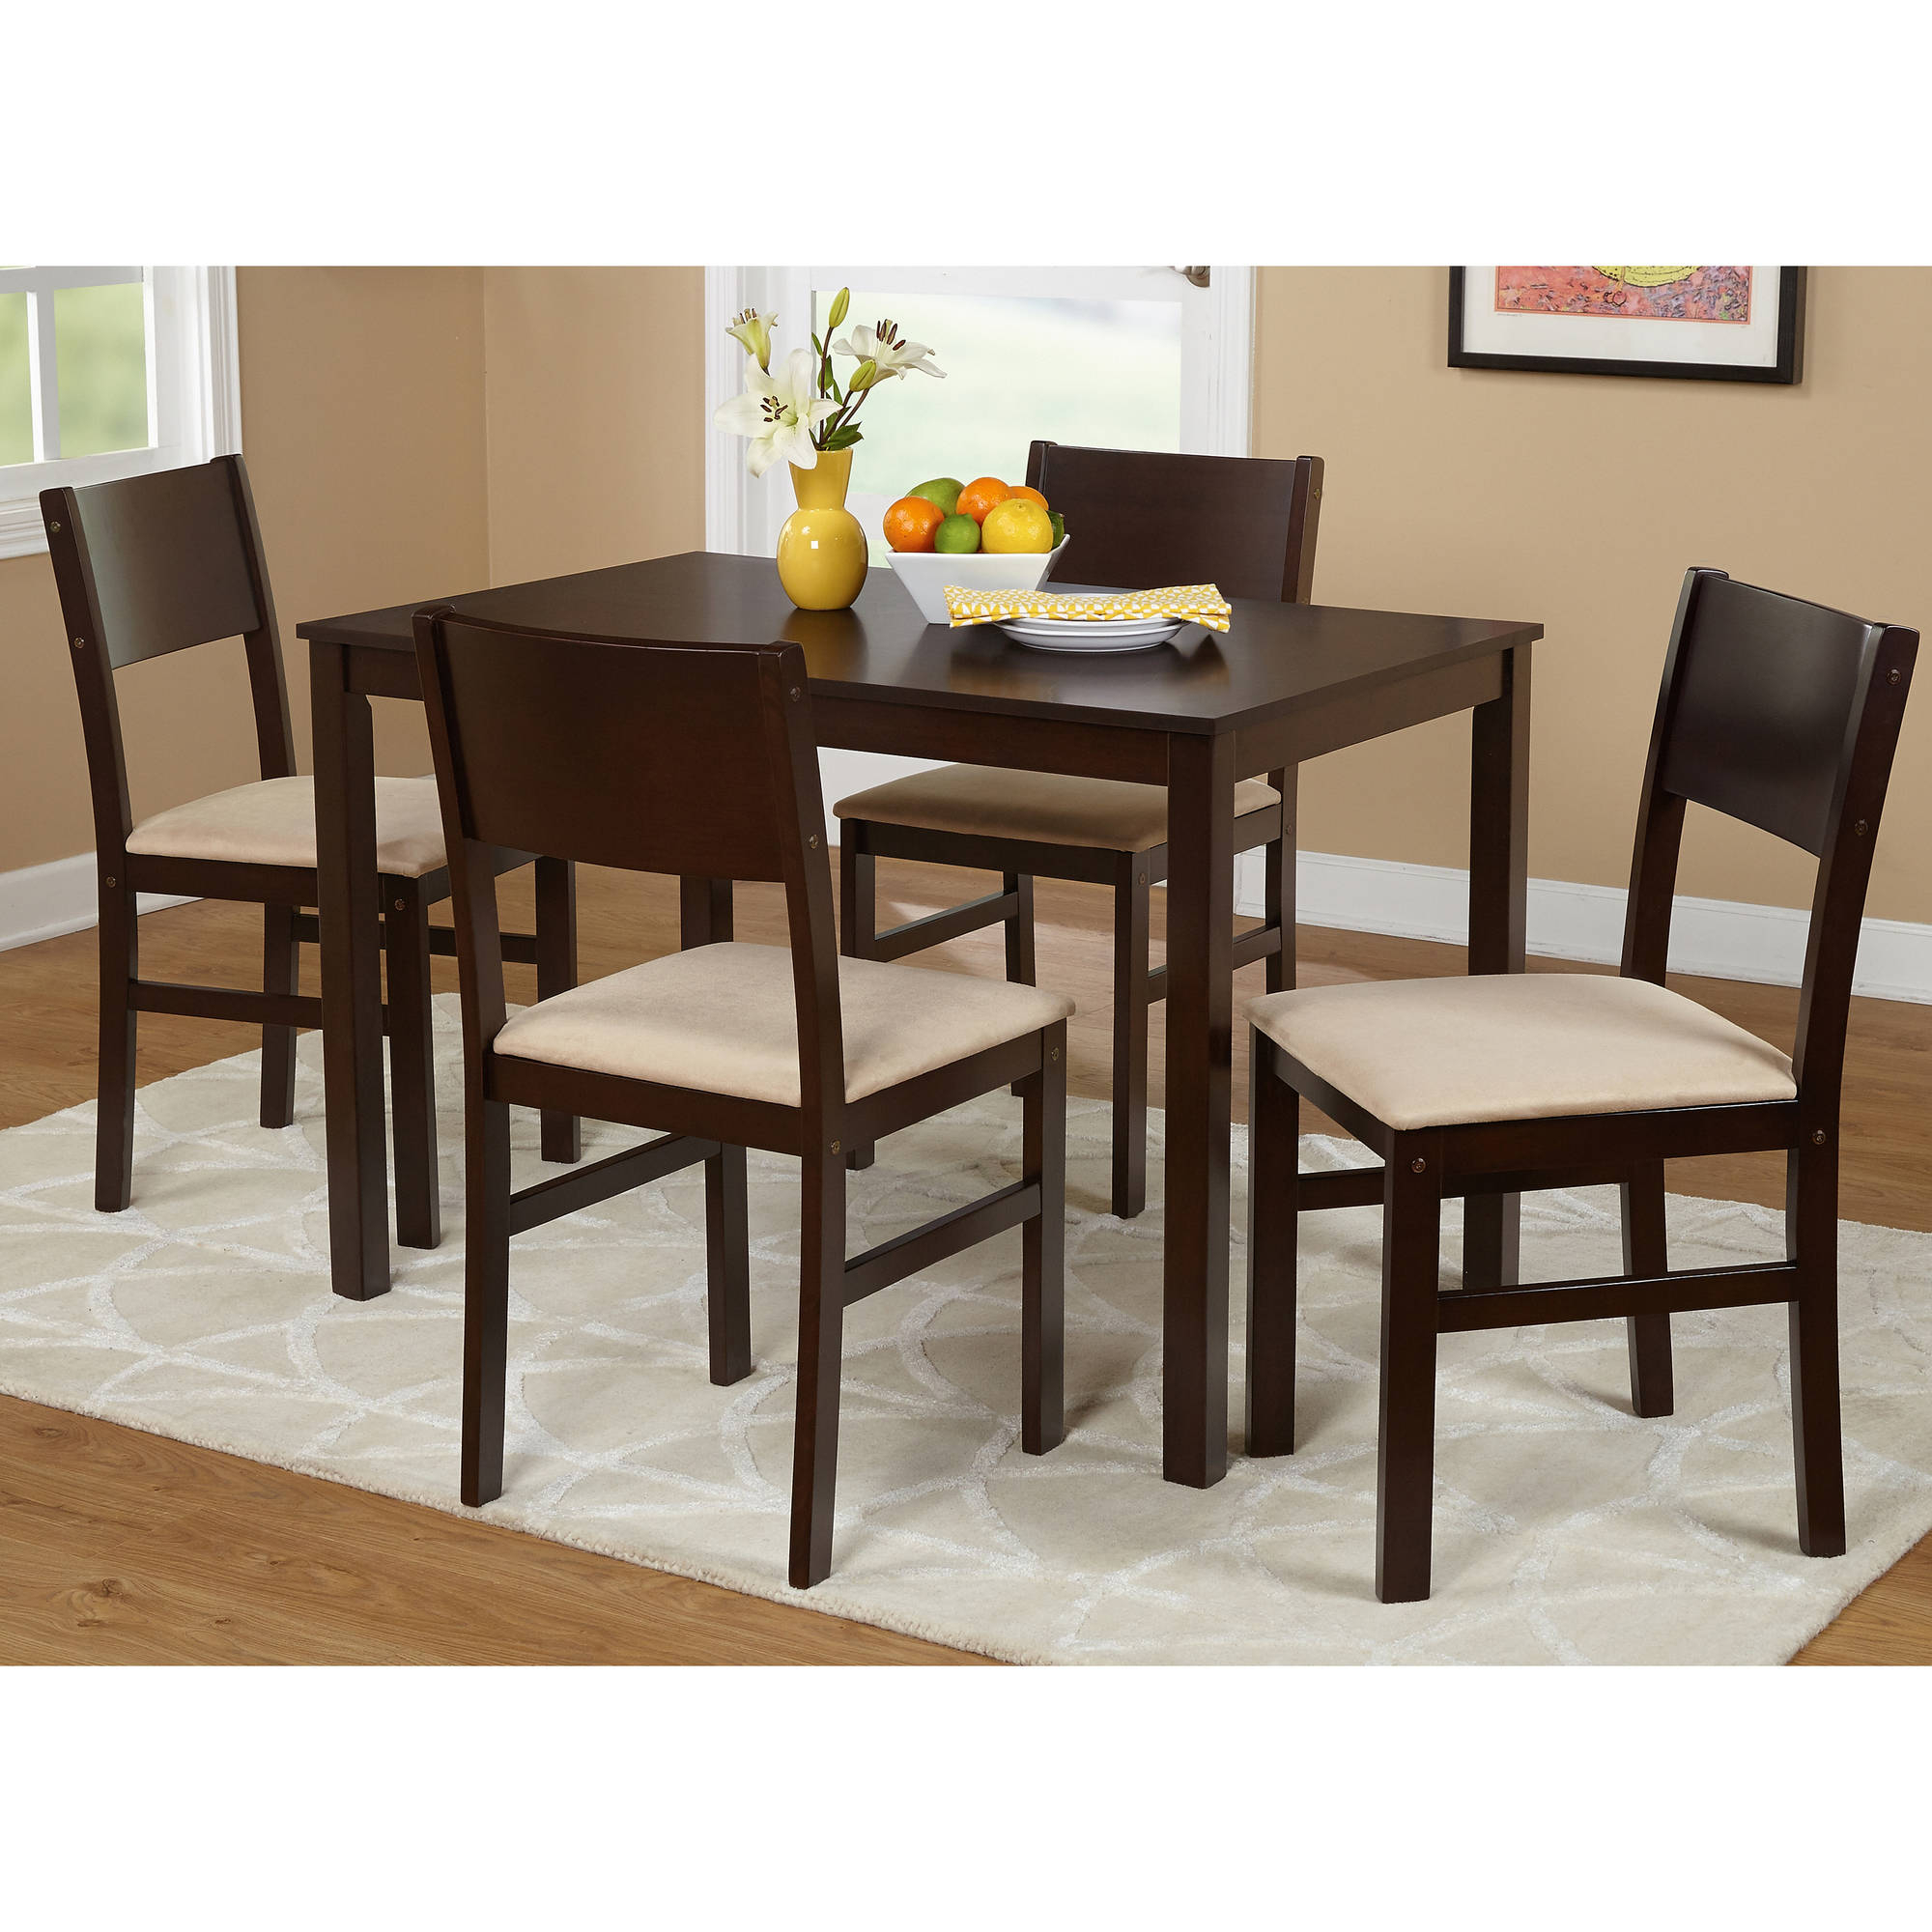 Famous Winsted 4 Piece Counter Height Dining Sets With Kitchen Table Sets Under 300 & Dining Room Sets Under 300 Kitchen (View 13 of 25)